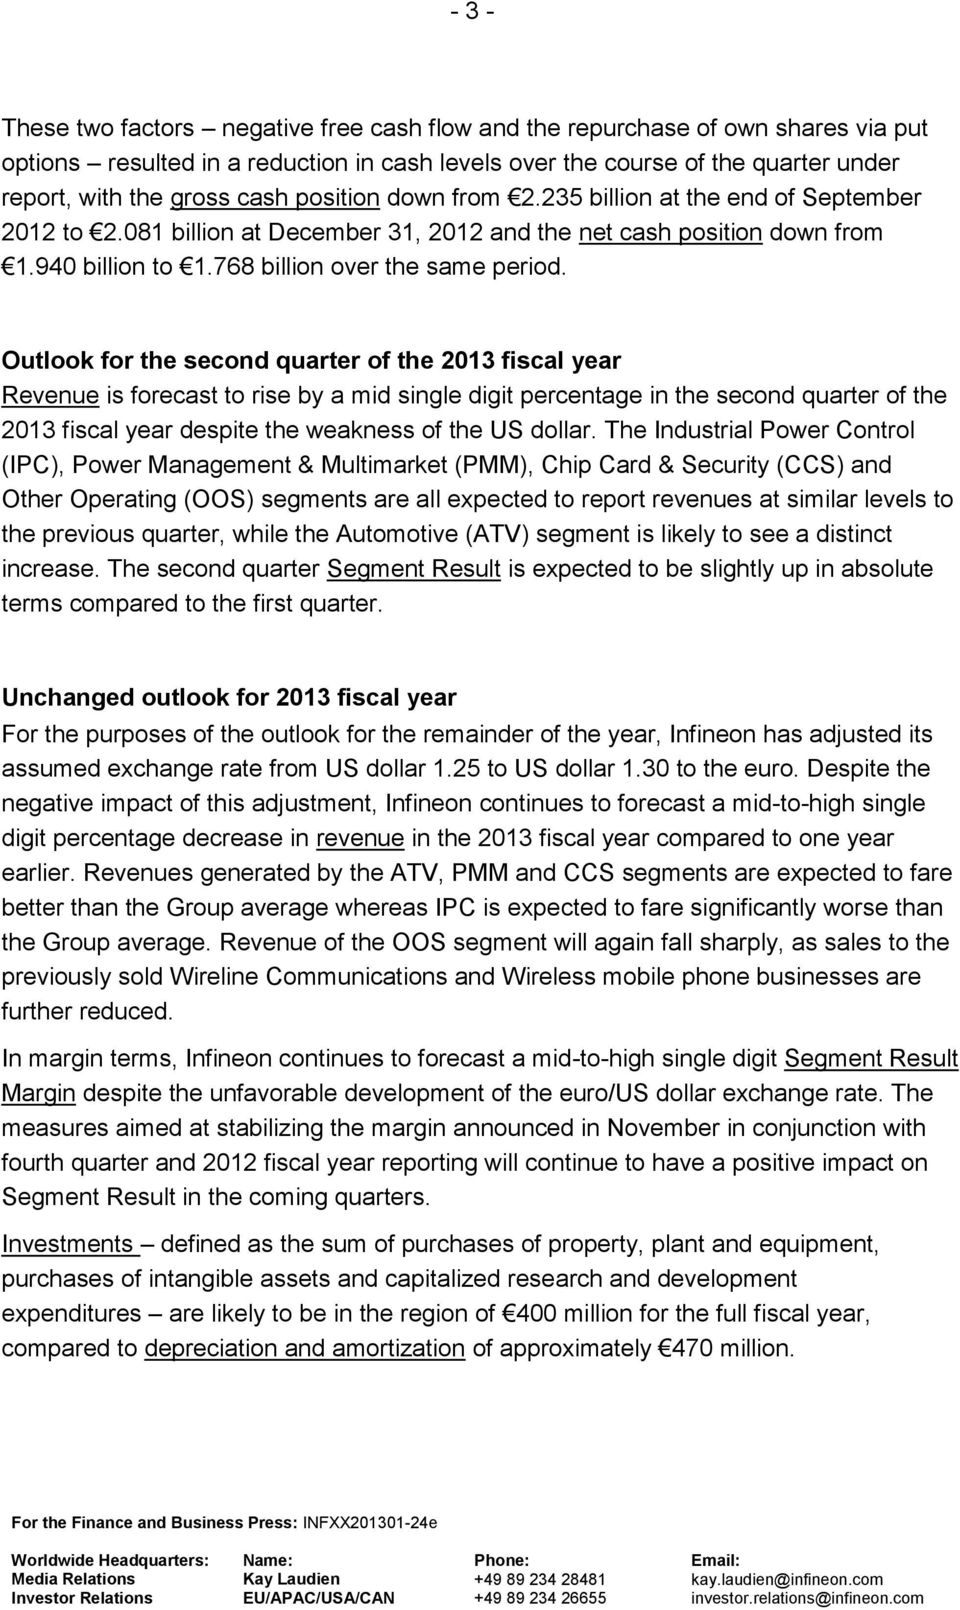 Outlook for the second quarter of the 2013 fiscal year Revenue is forecast to rise by a mid single digit percentage in the second quarter of the 2013 fiscal year despite the weakness of the US dollar.